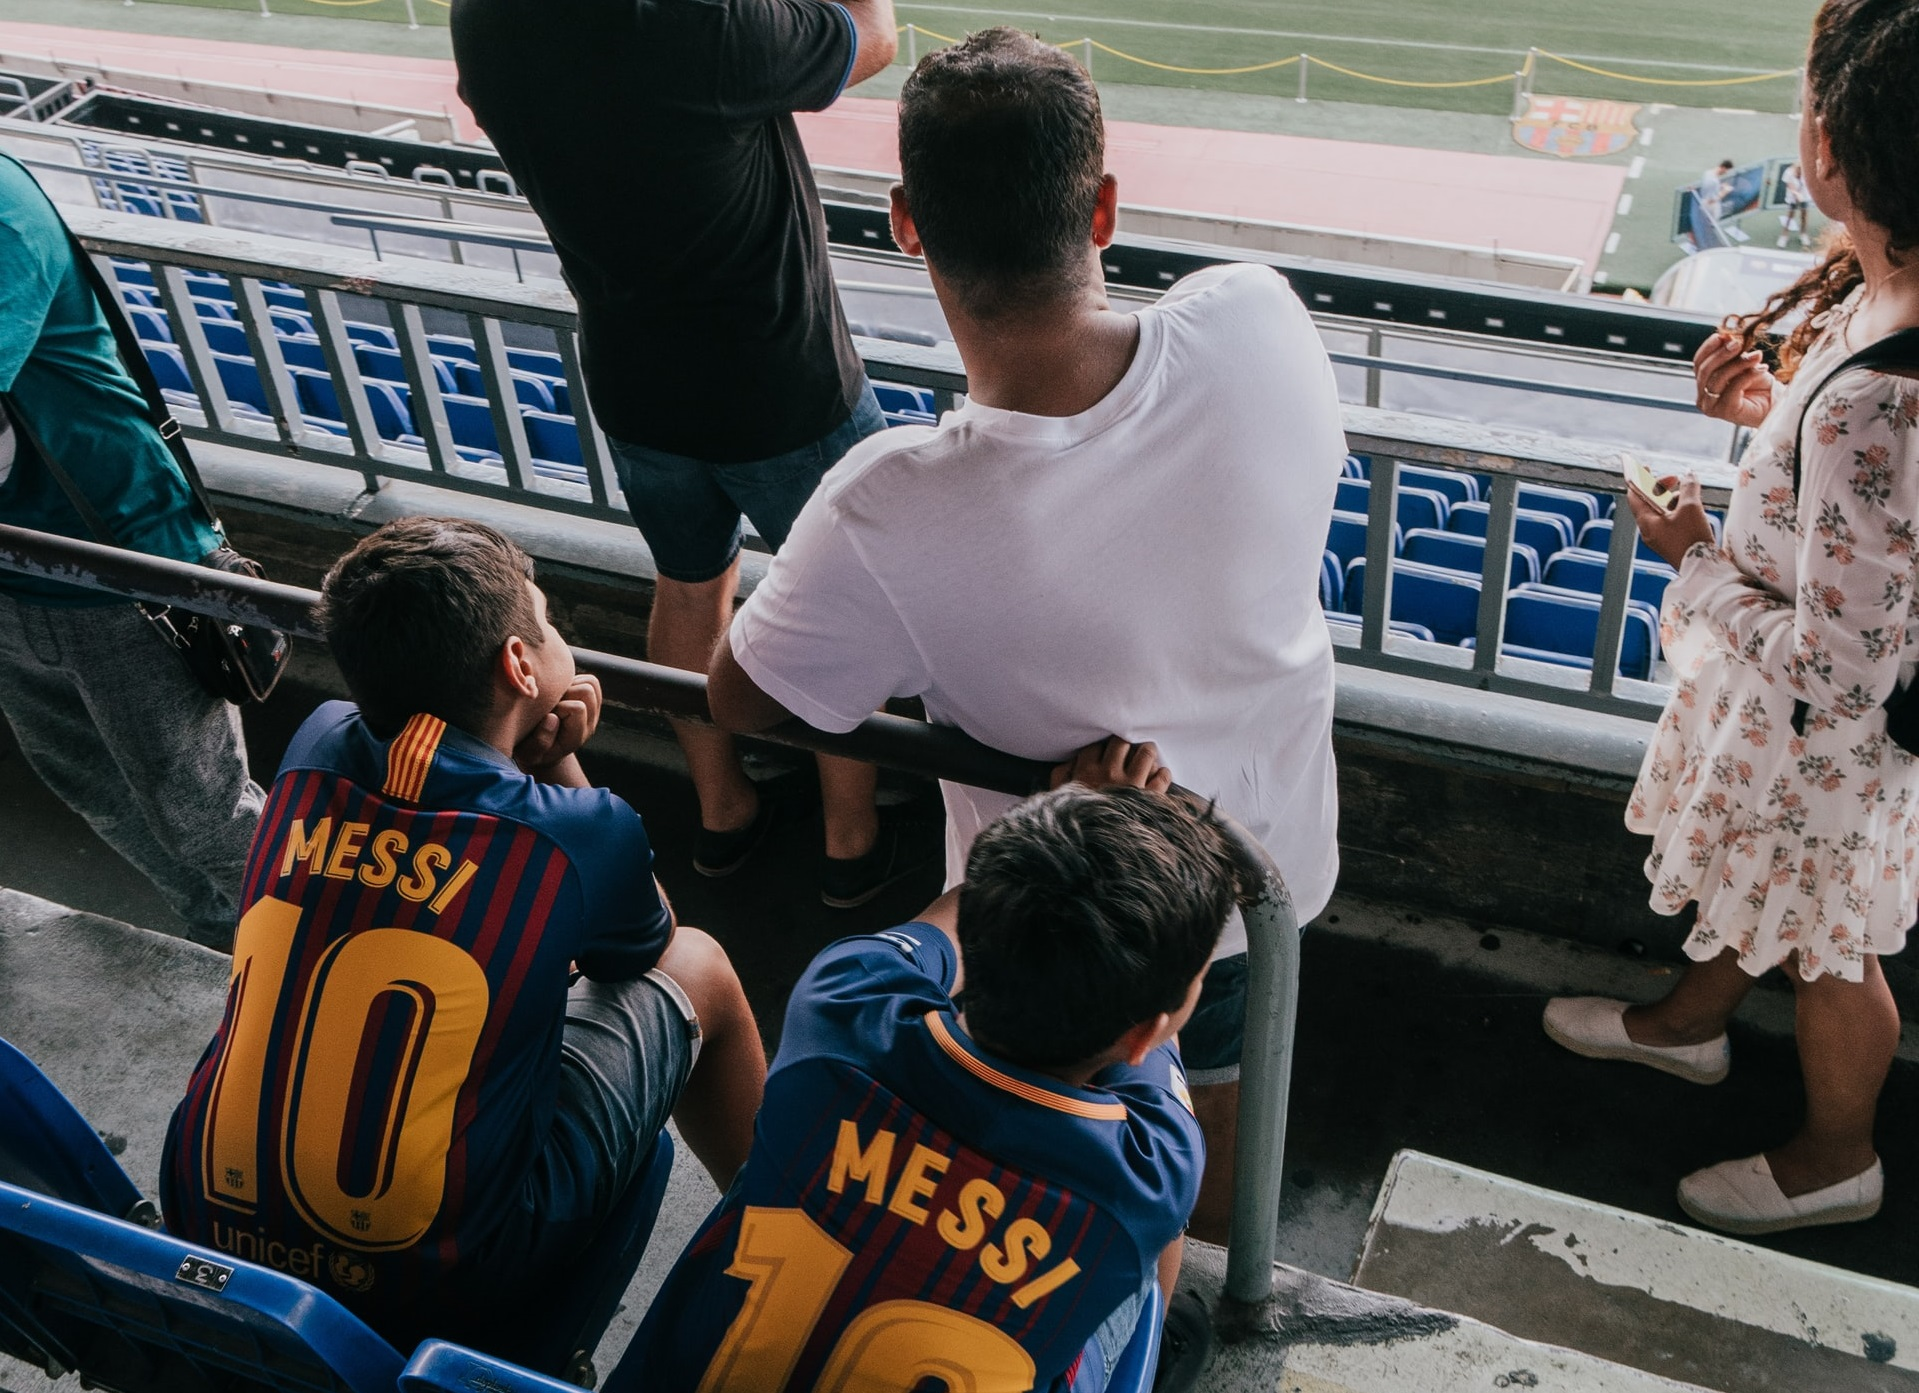 kids with Messi jerseys